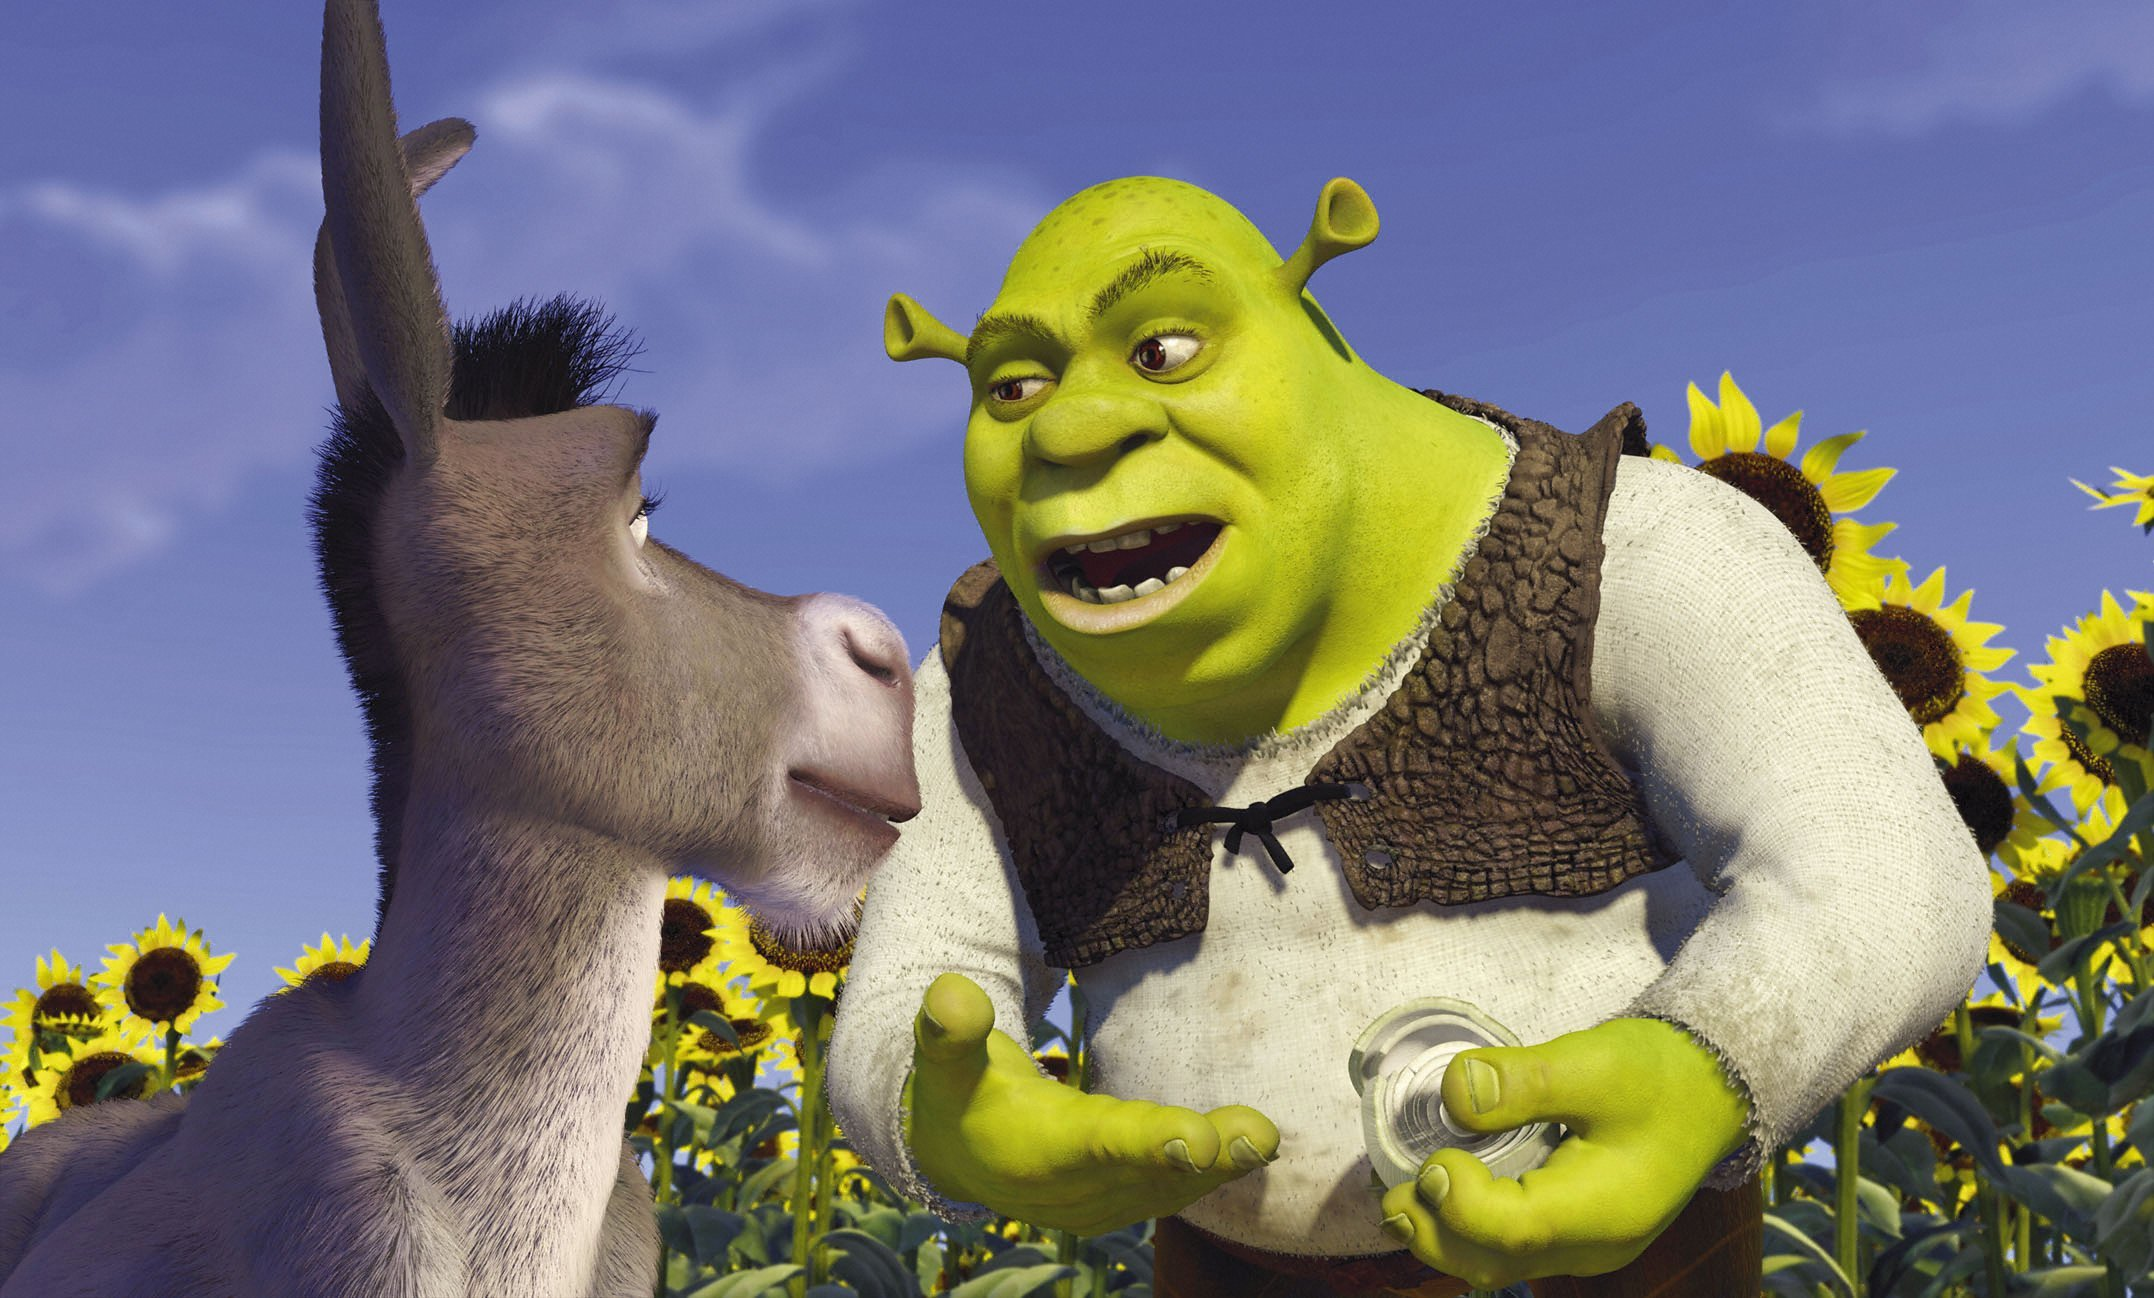 Picture shows: Donkey (voices by EDDIE MURPHY) and Shrek (voices by MIKE MYERS) standing in a sunflower field